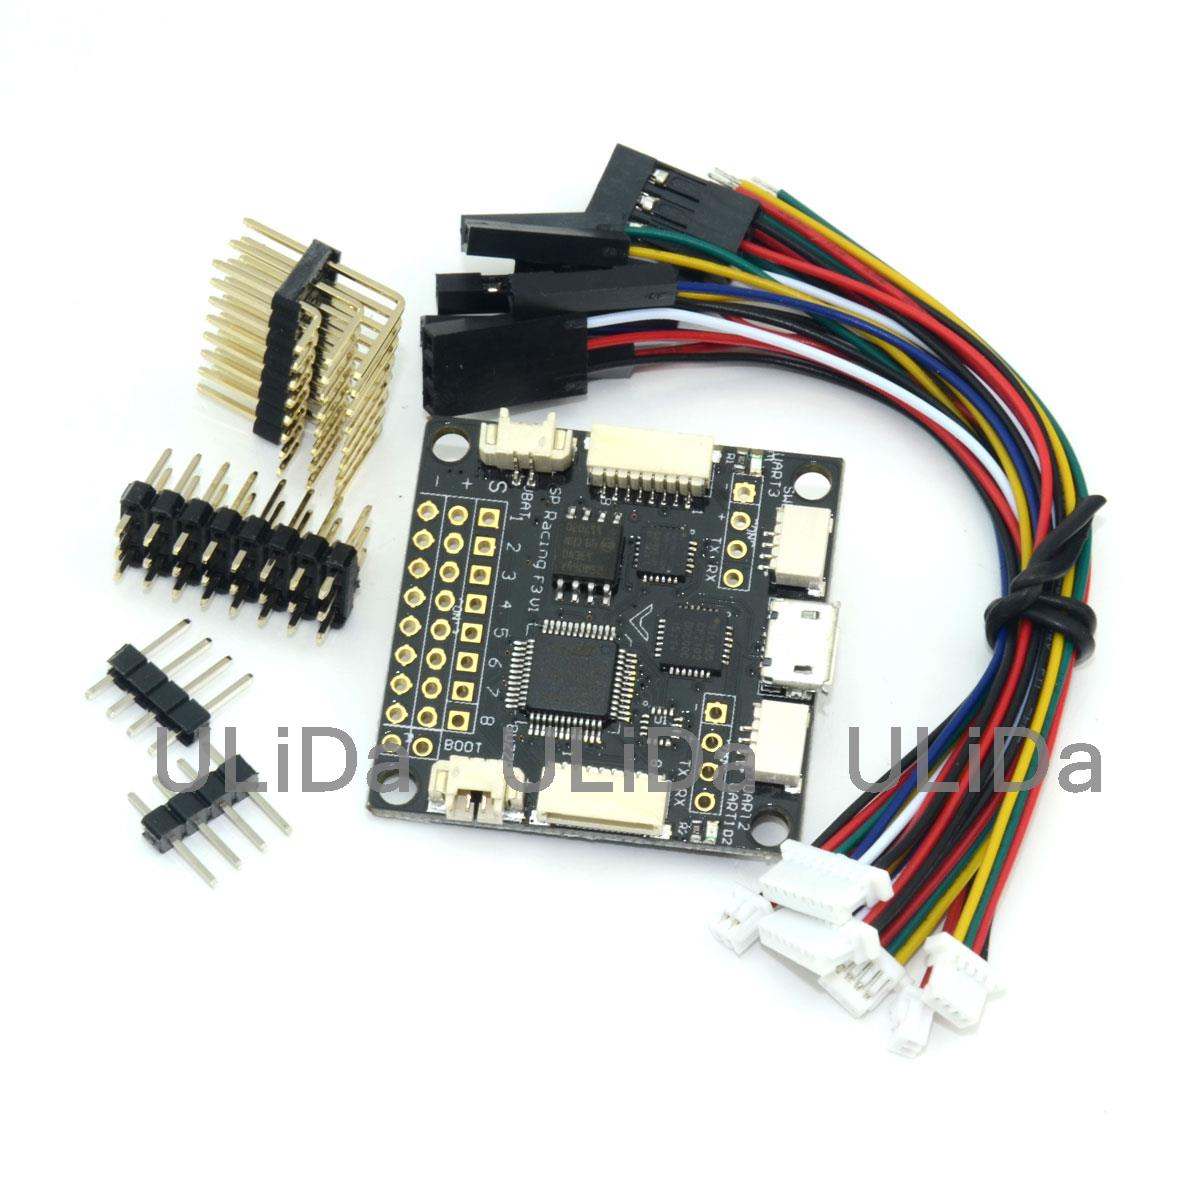 hight resolution of sp racing f3 acro flight controller board fc for fpv quadcopter multicopter in parts accessories from toys hobbies on aliexpress com alibaba group